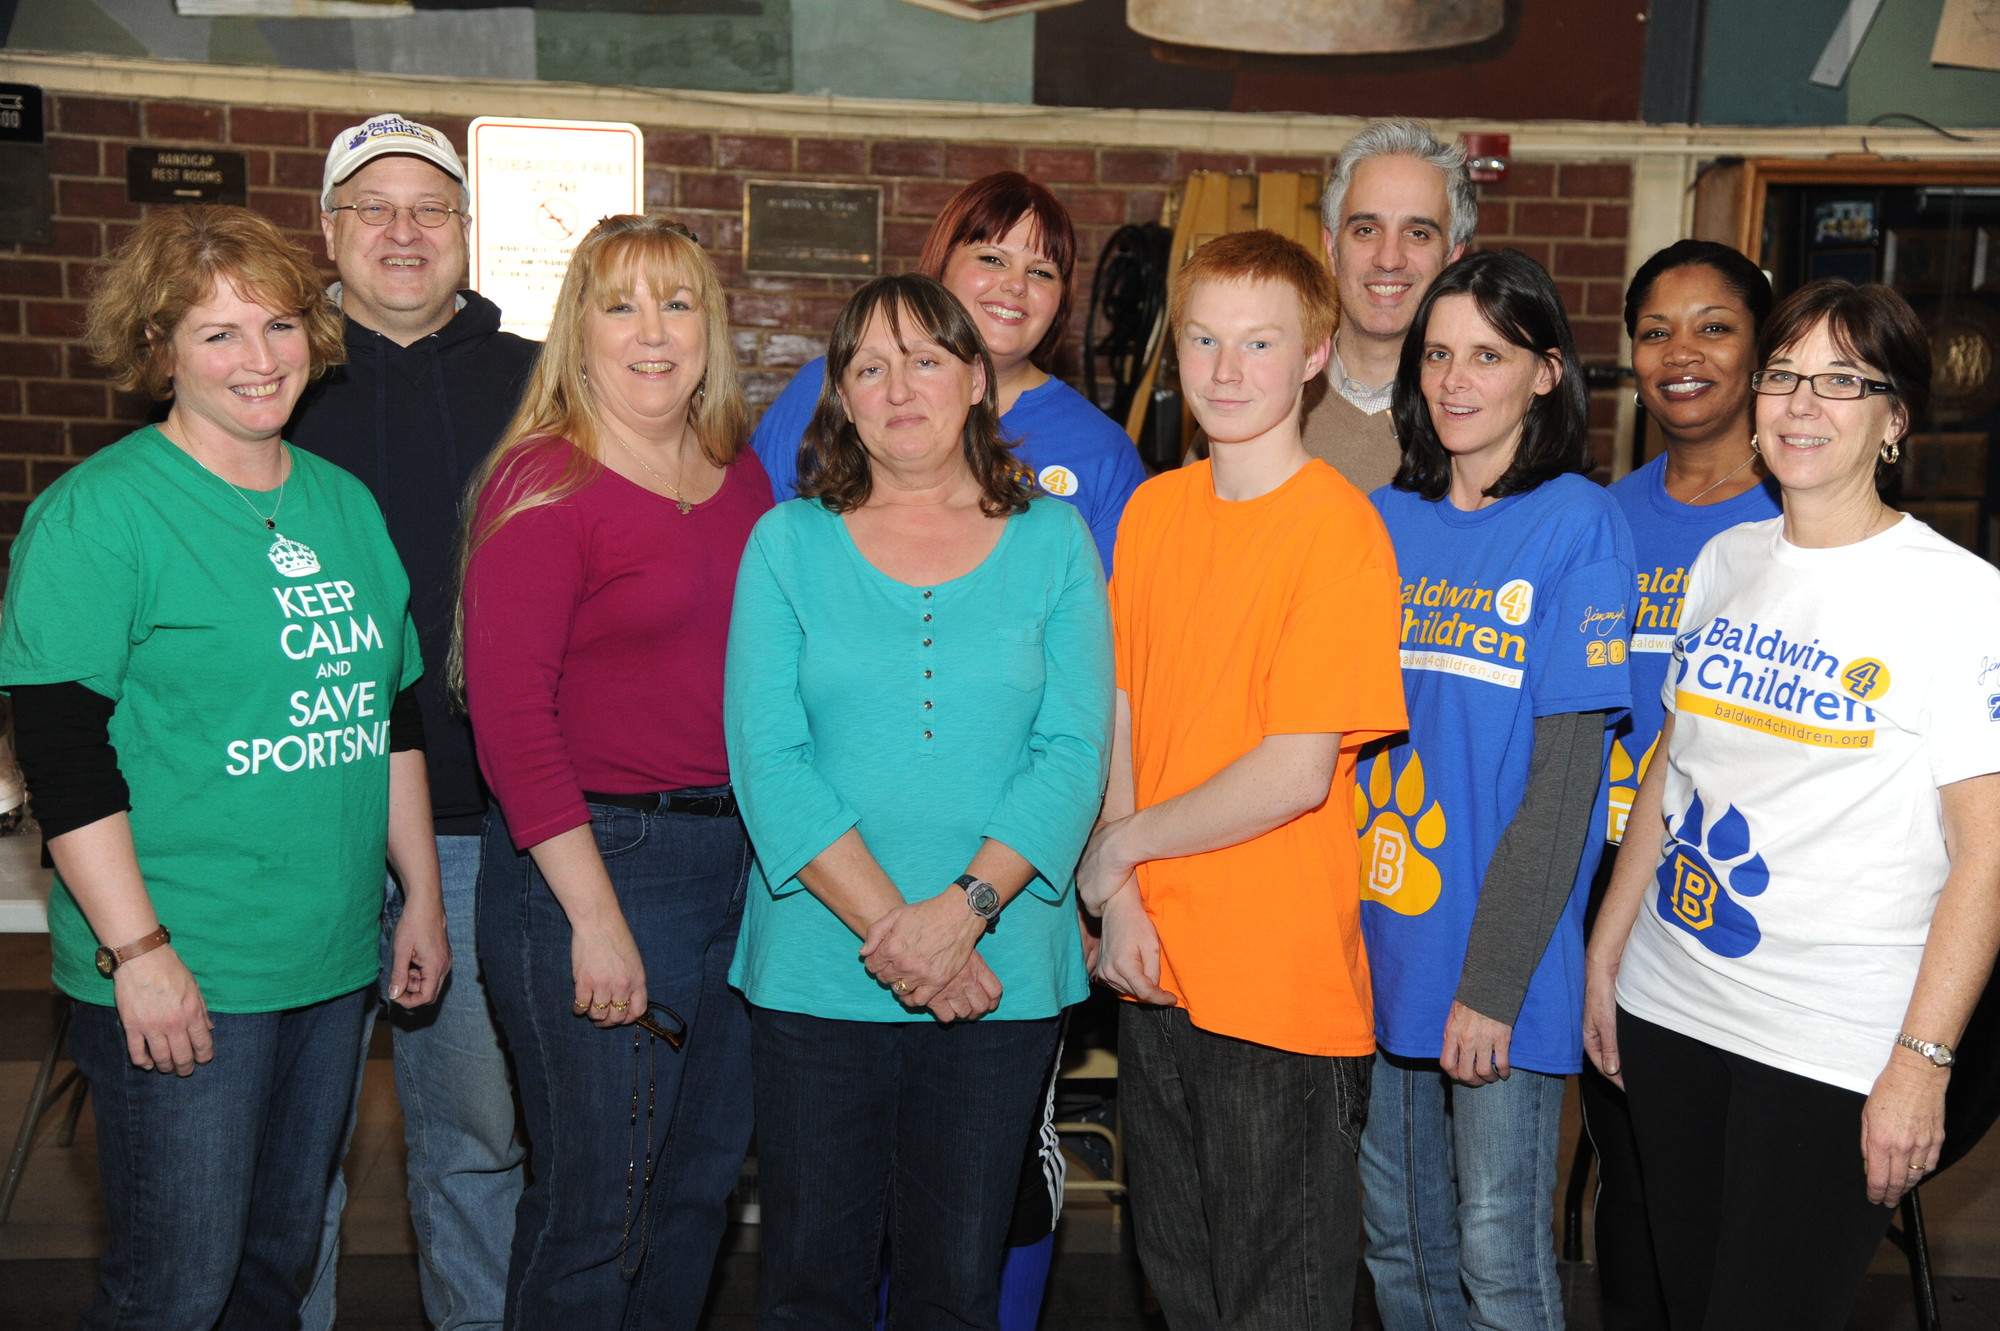 Volunteers from Baldwin 4 Children organized fundraisers over eight months to restore programs at Baldwin schools that were cut in the 2013-14 budget. Back row from left were Richard Damm, Heather Cameron, Rico Nardone and Pat Jenkins. Front row from left were Jen Clavin, Linda Degen, Lynn Maniace, Matthew Maniace, Deborah ReBore and Mary Jane Kearns.